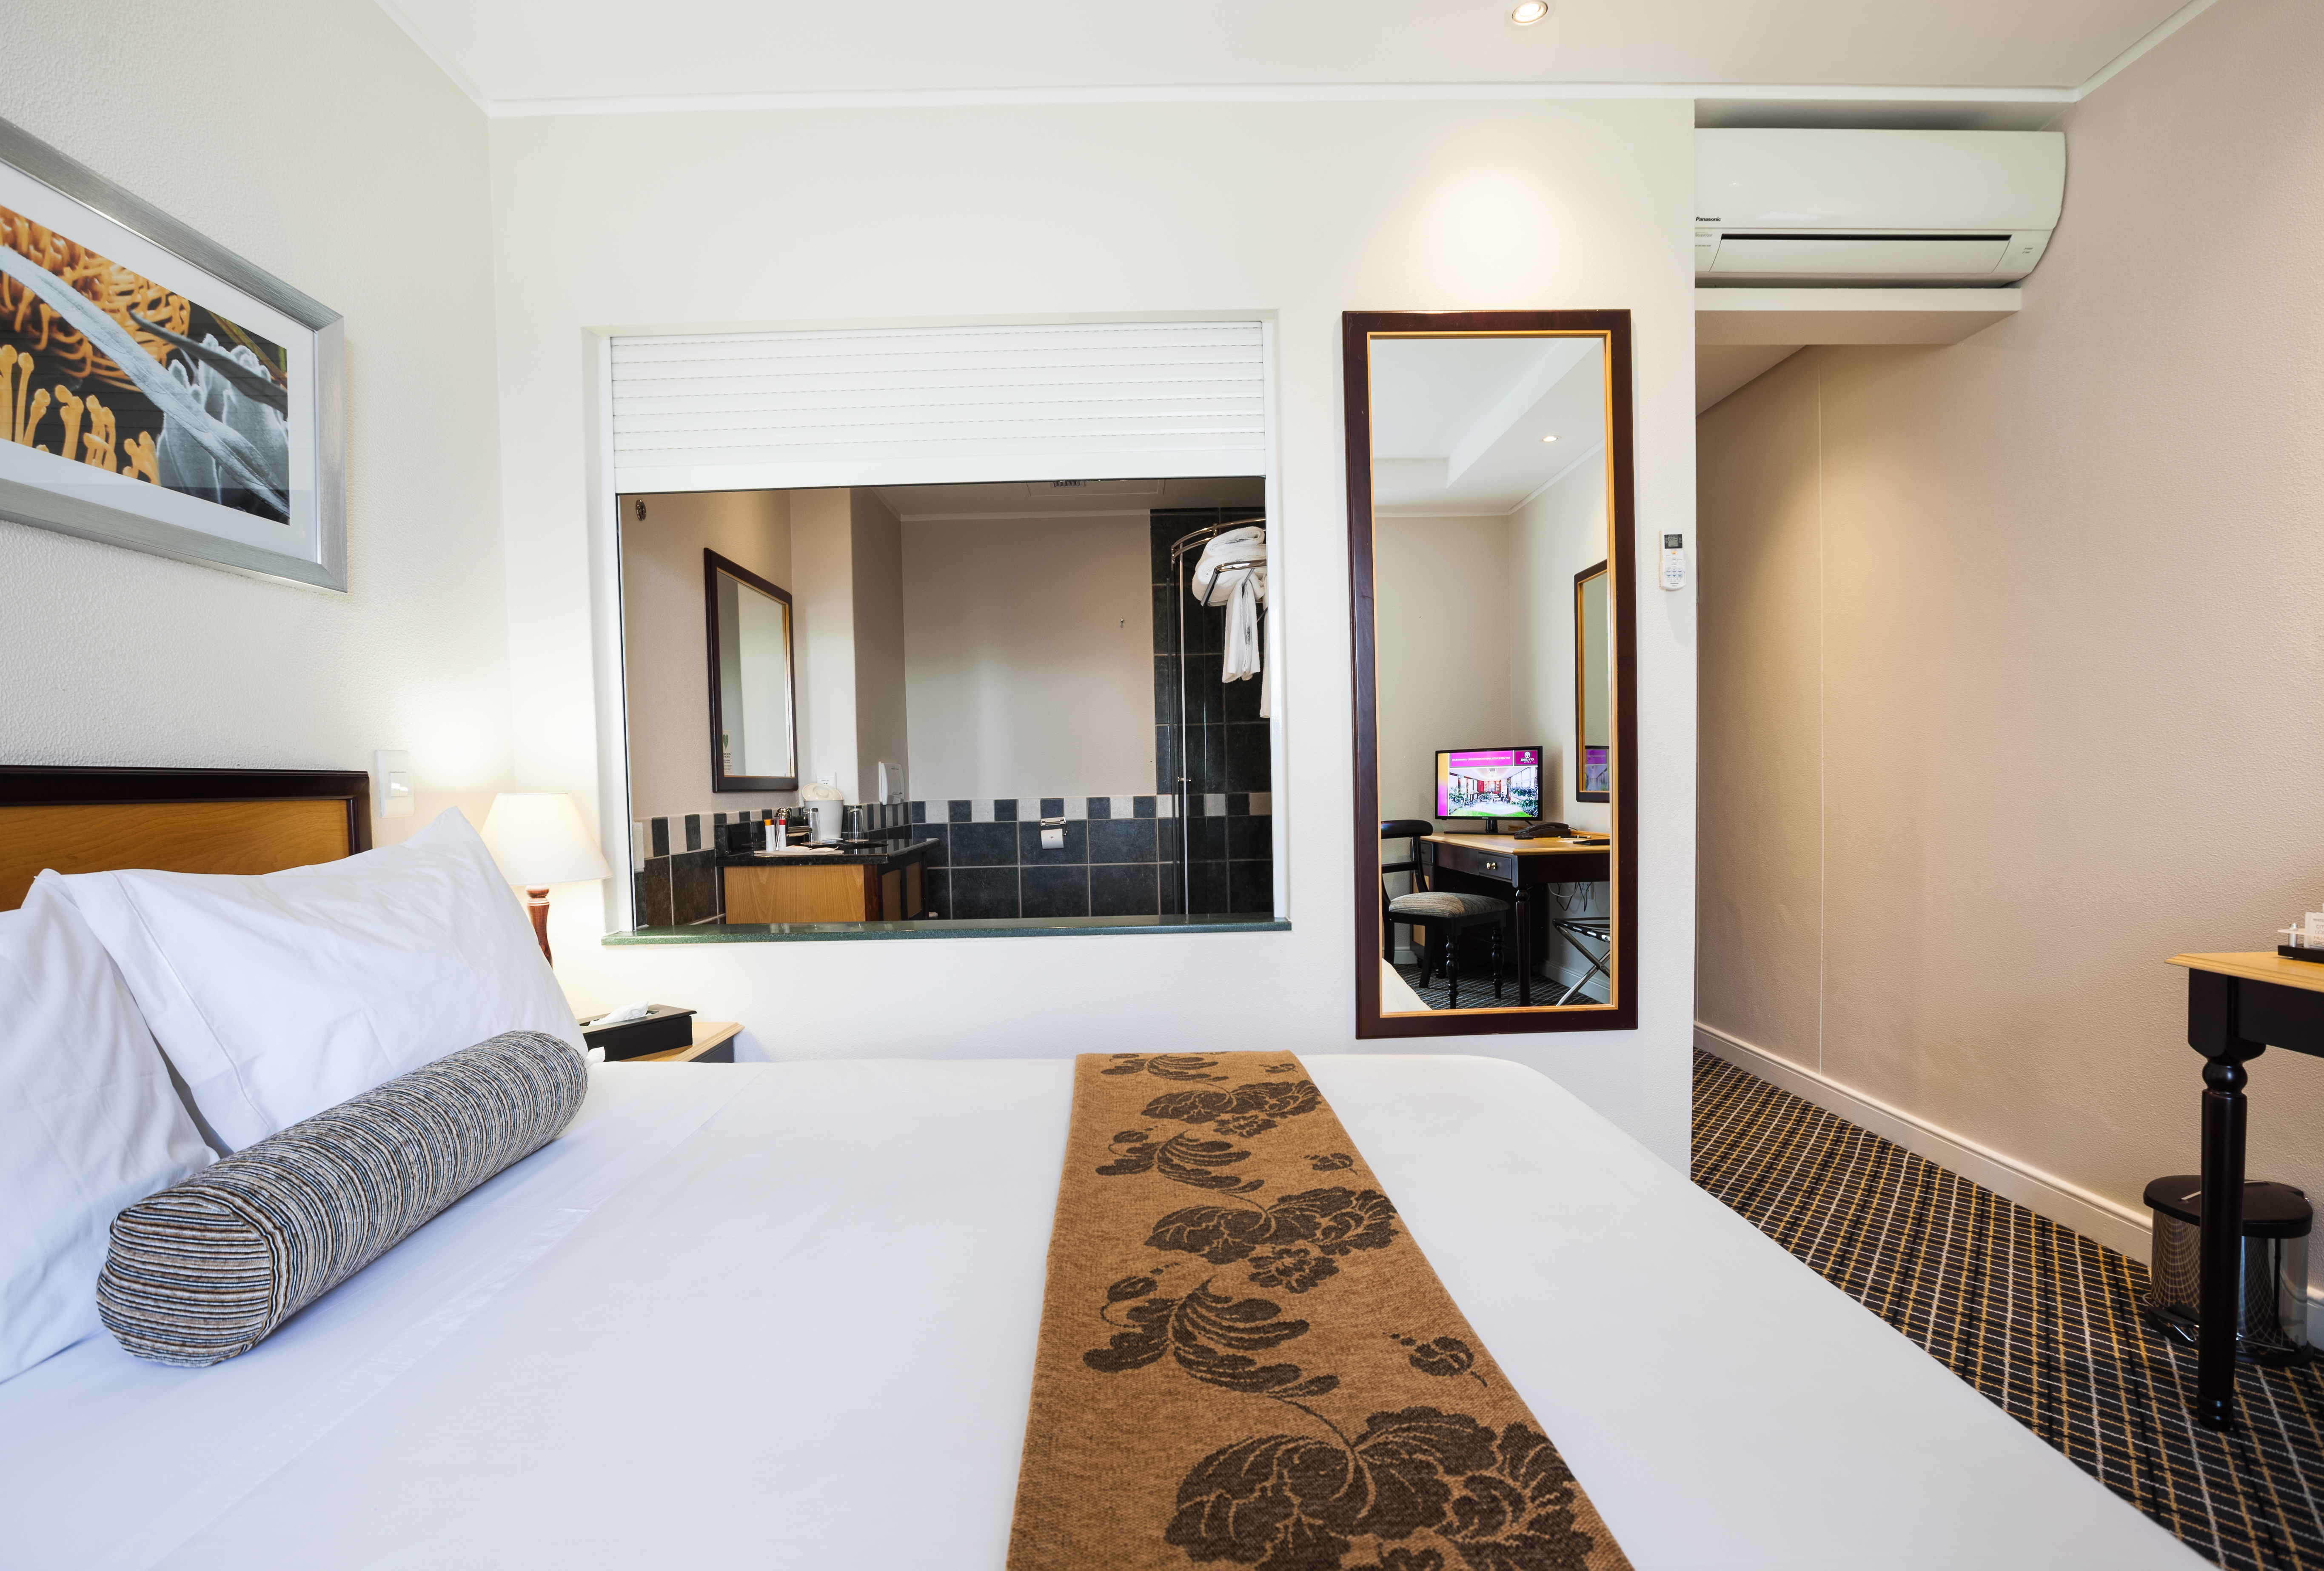 City Lodge Hotel GrandWest, City of Cape Town